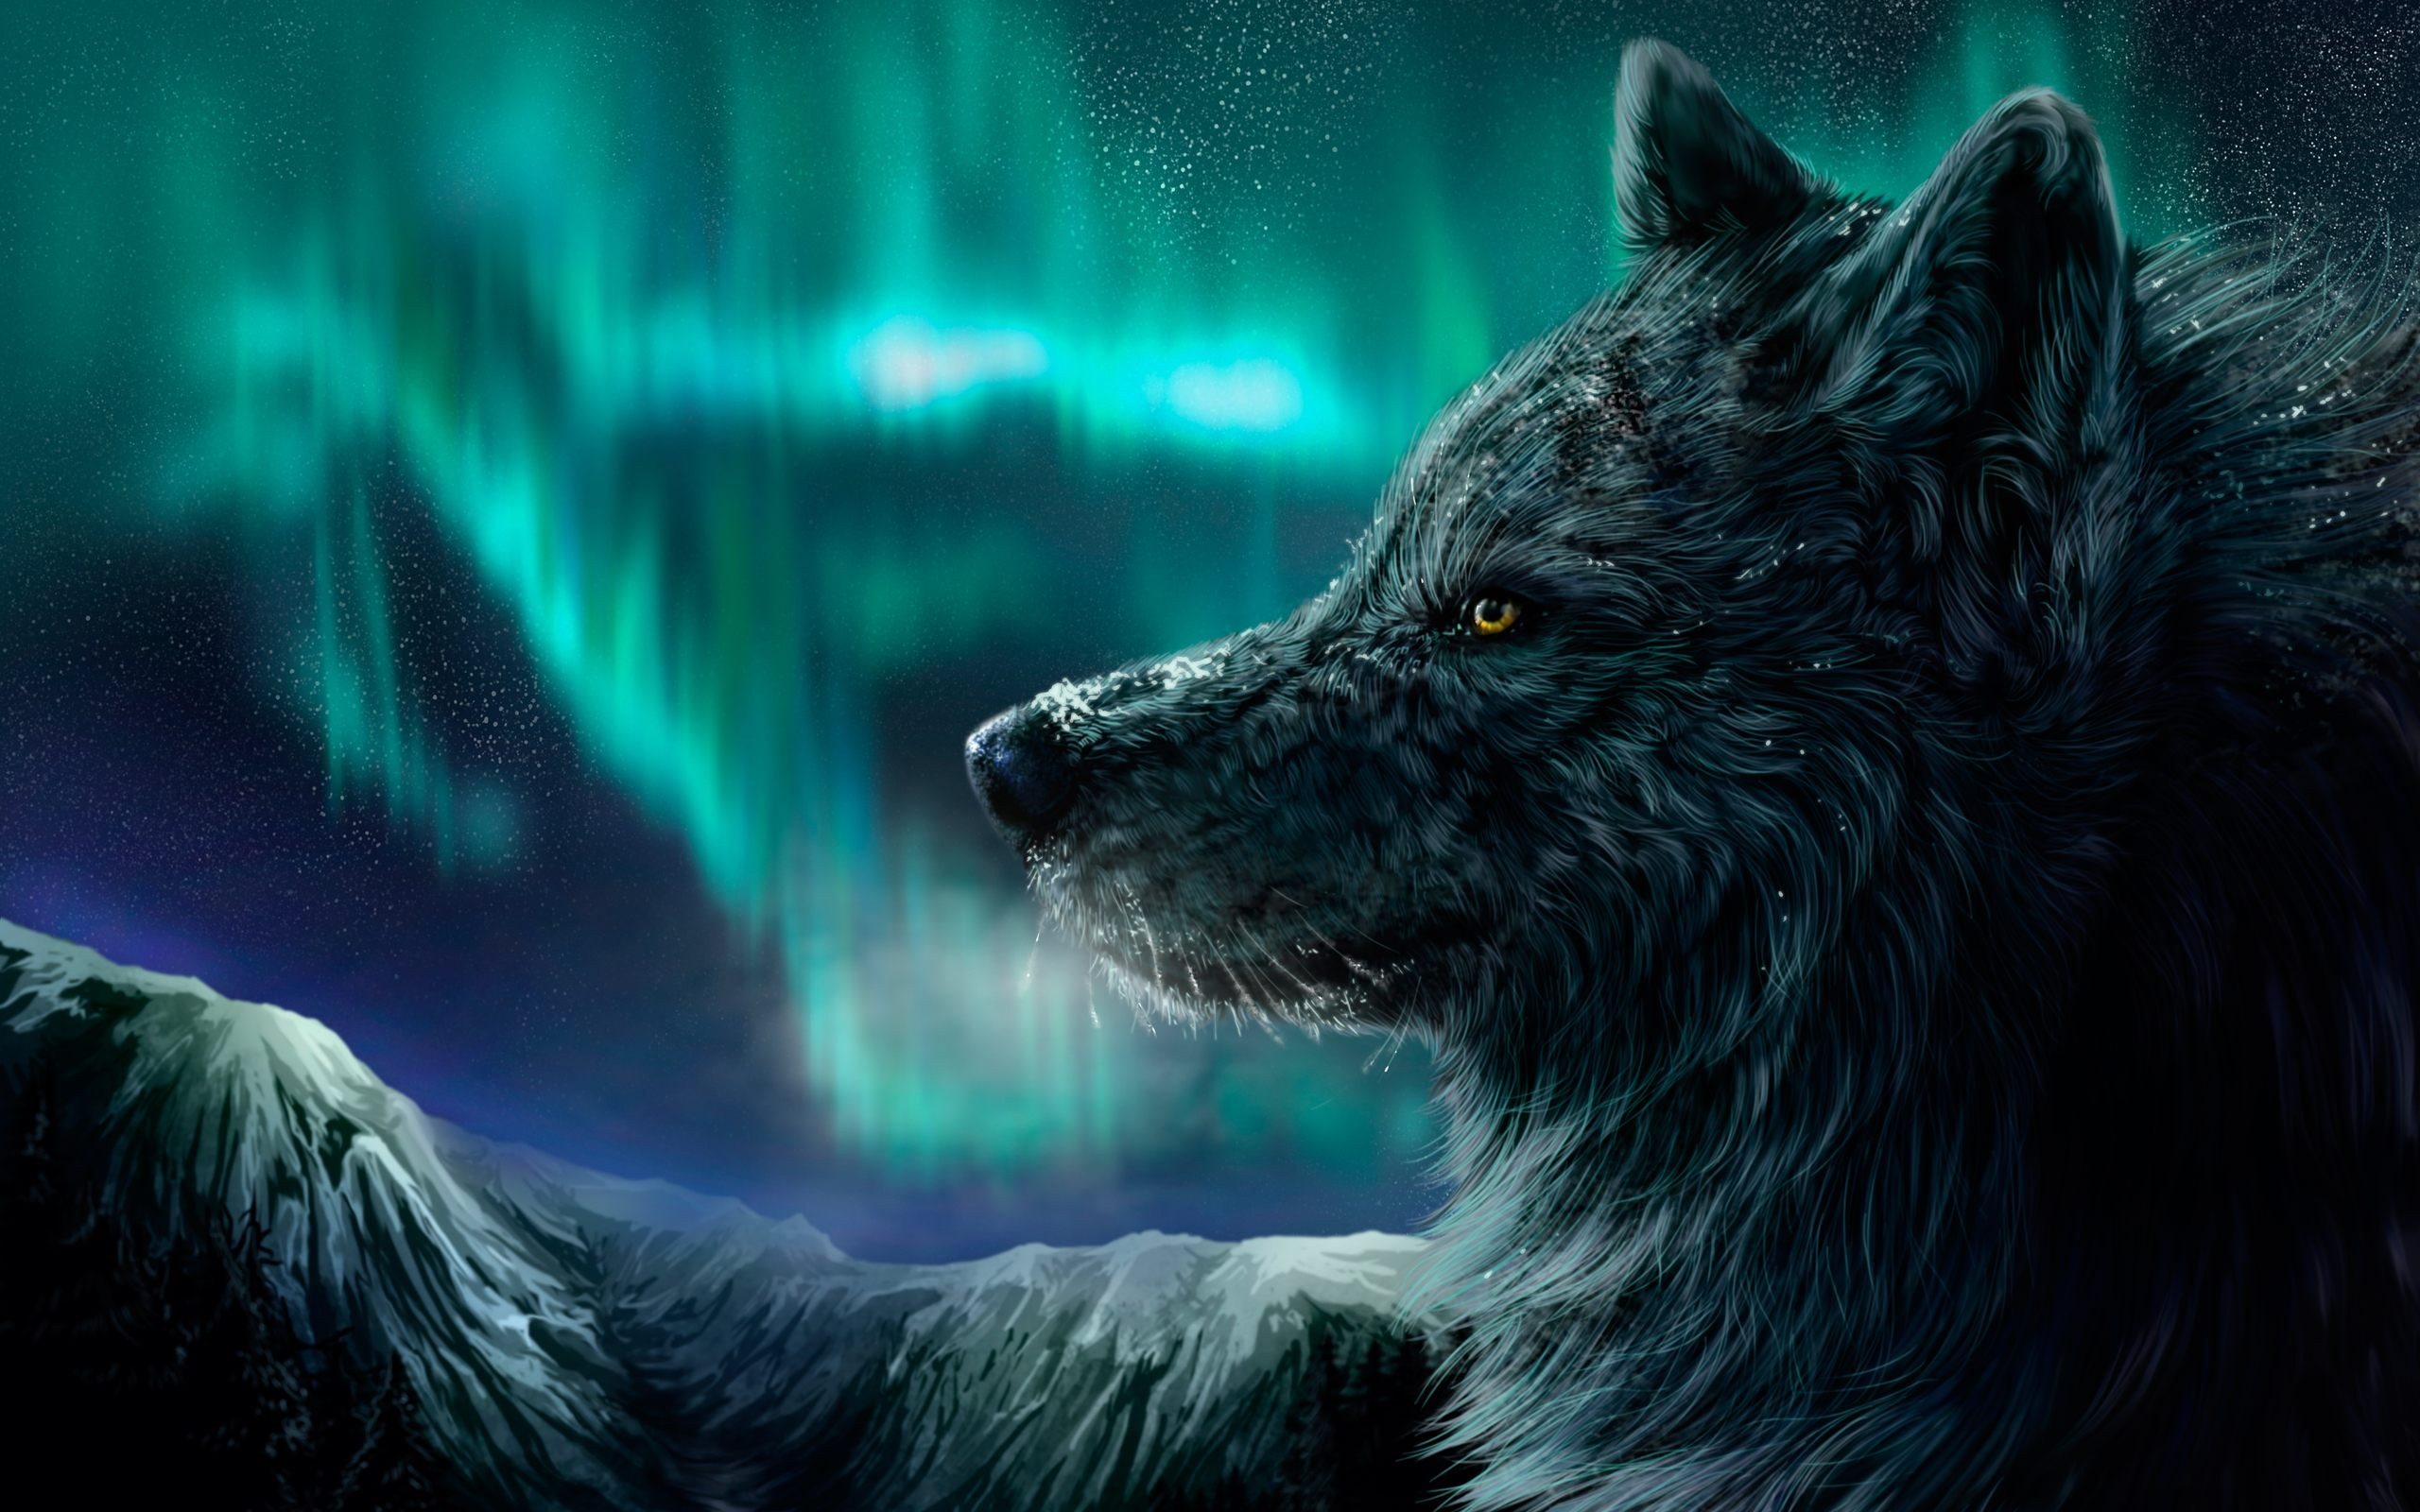 Northern Lights Wolf Wallpaper For Desktop PC amp Mobile 2560x1600